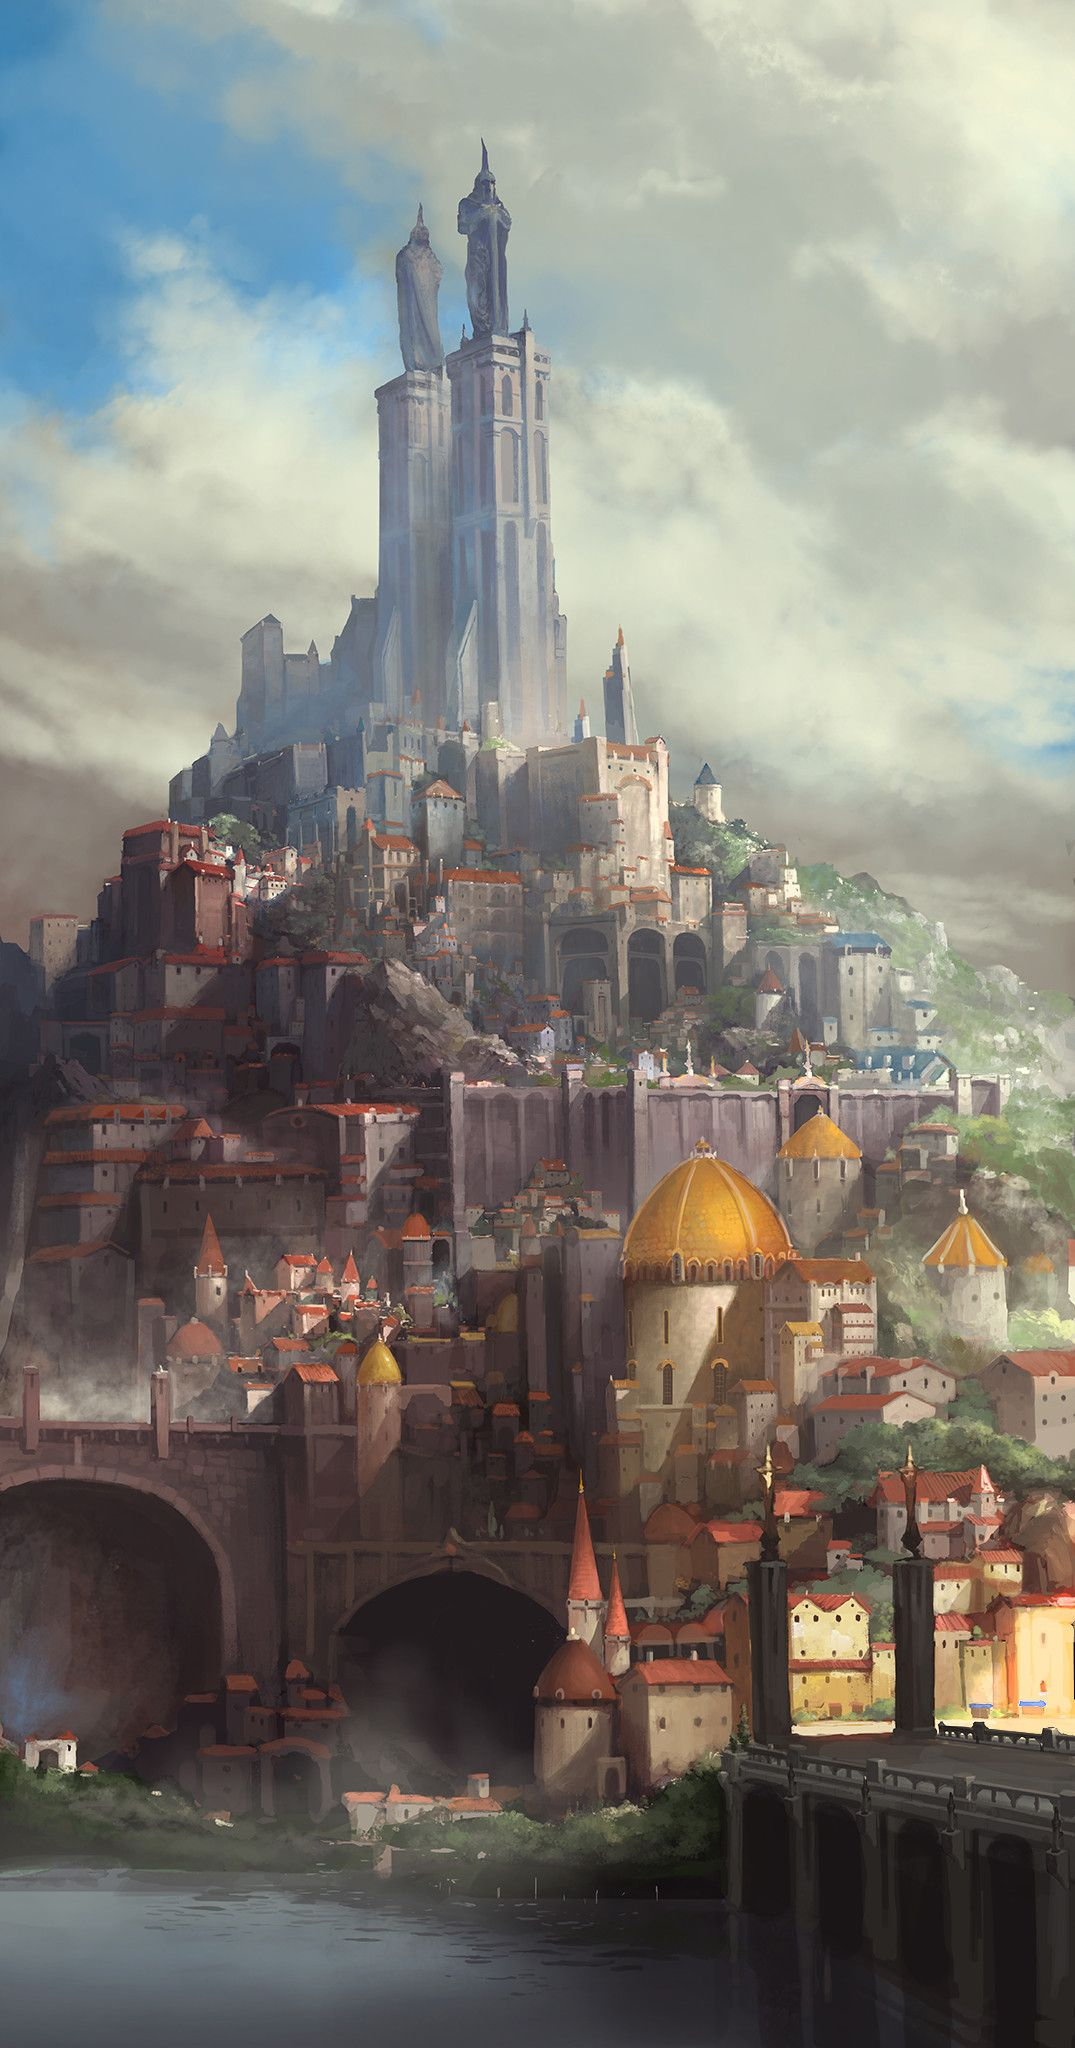 Medieval Fantasy Cities : medieval, fantasy, cities, Might, Capital, Republic., Fantasy, Landscapes,, Castle,, Concept